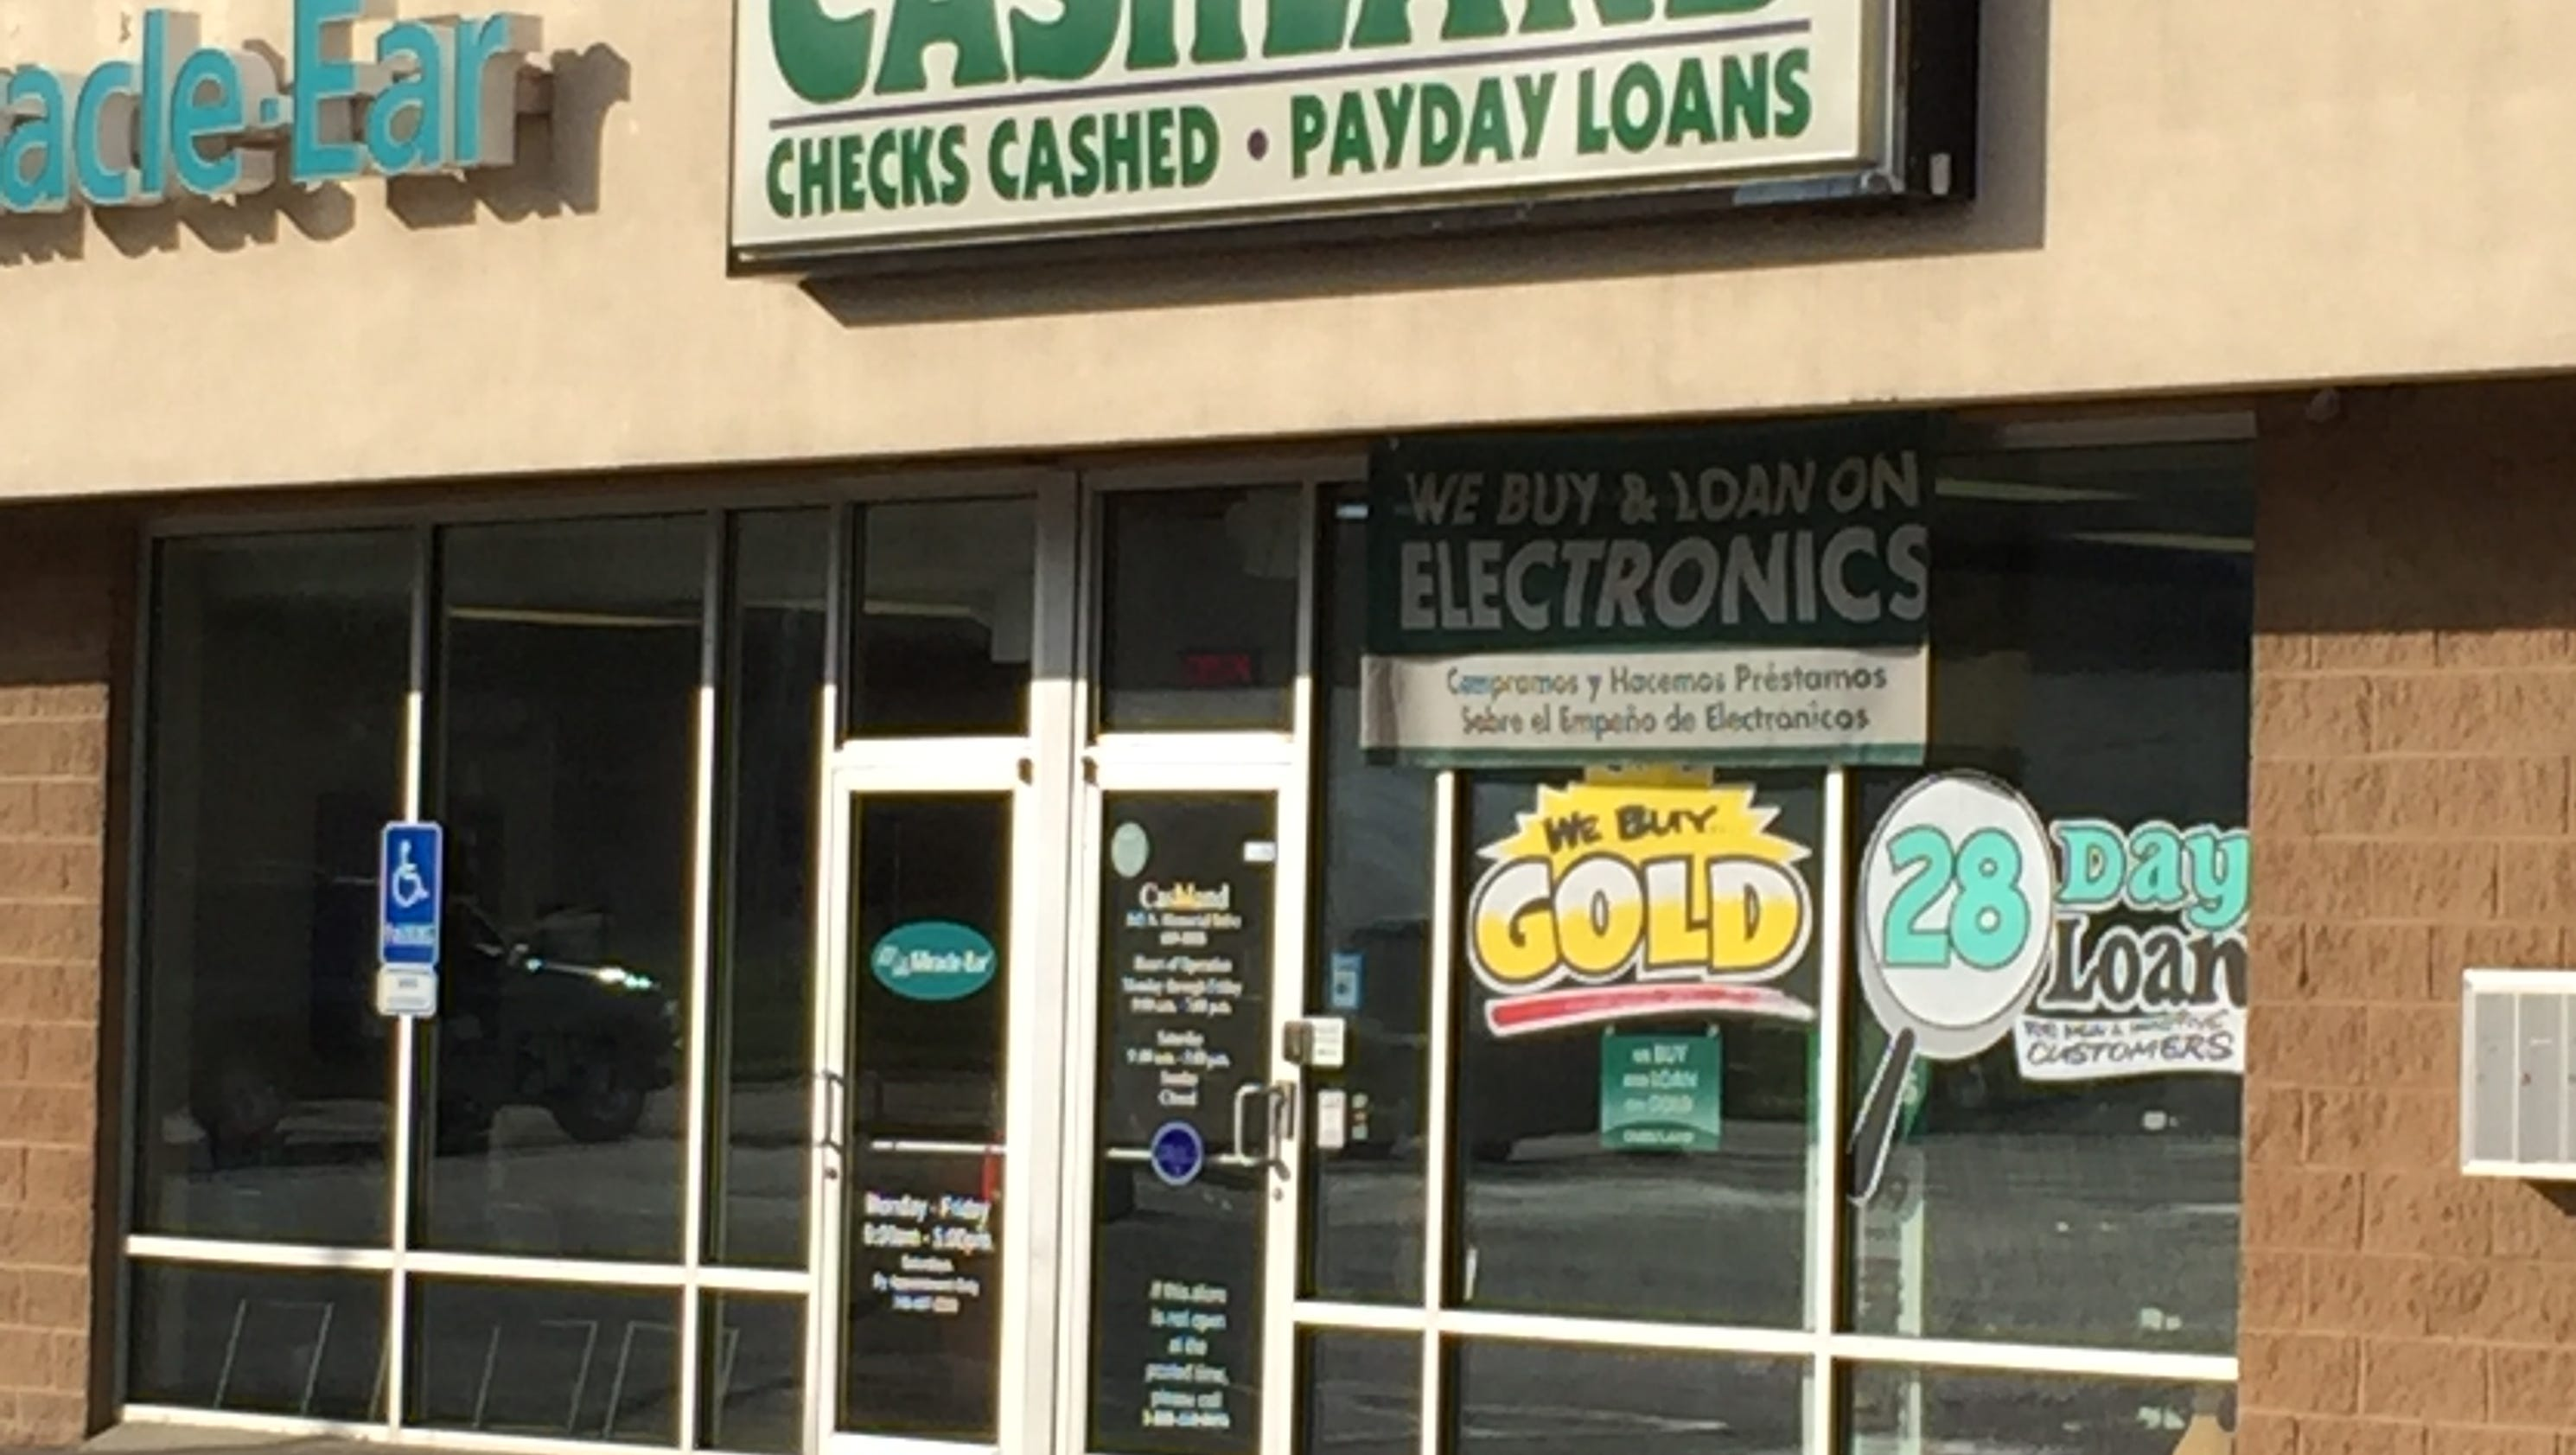 Get out payday loans photo 1